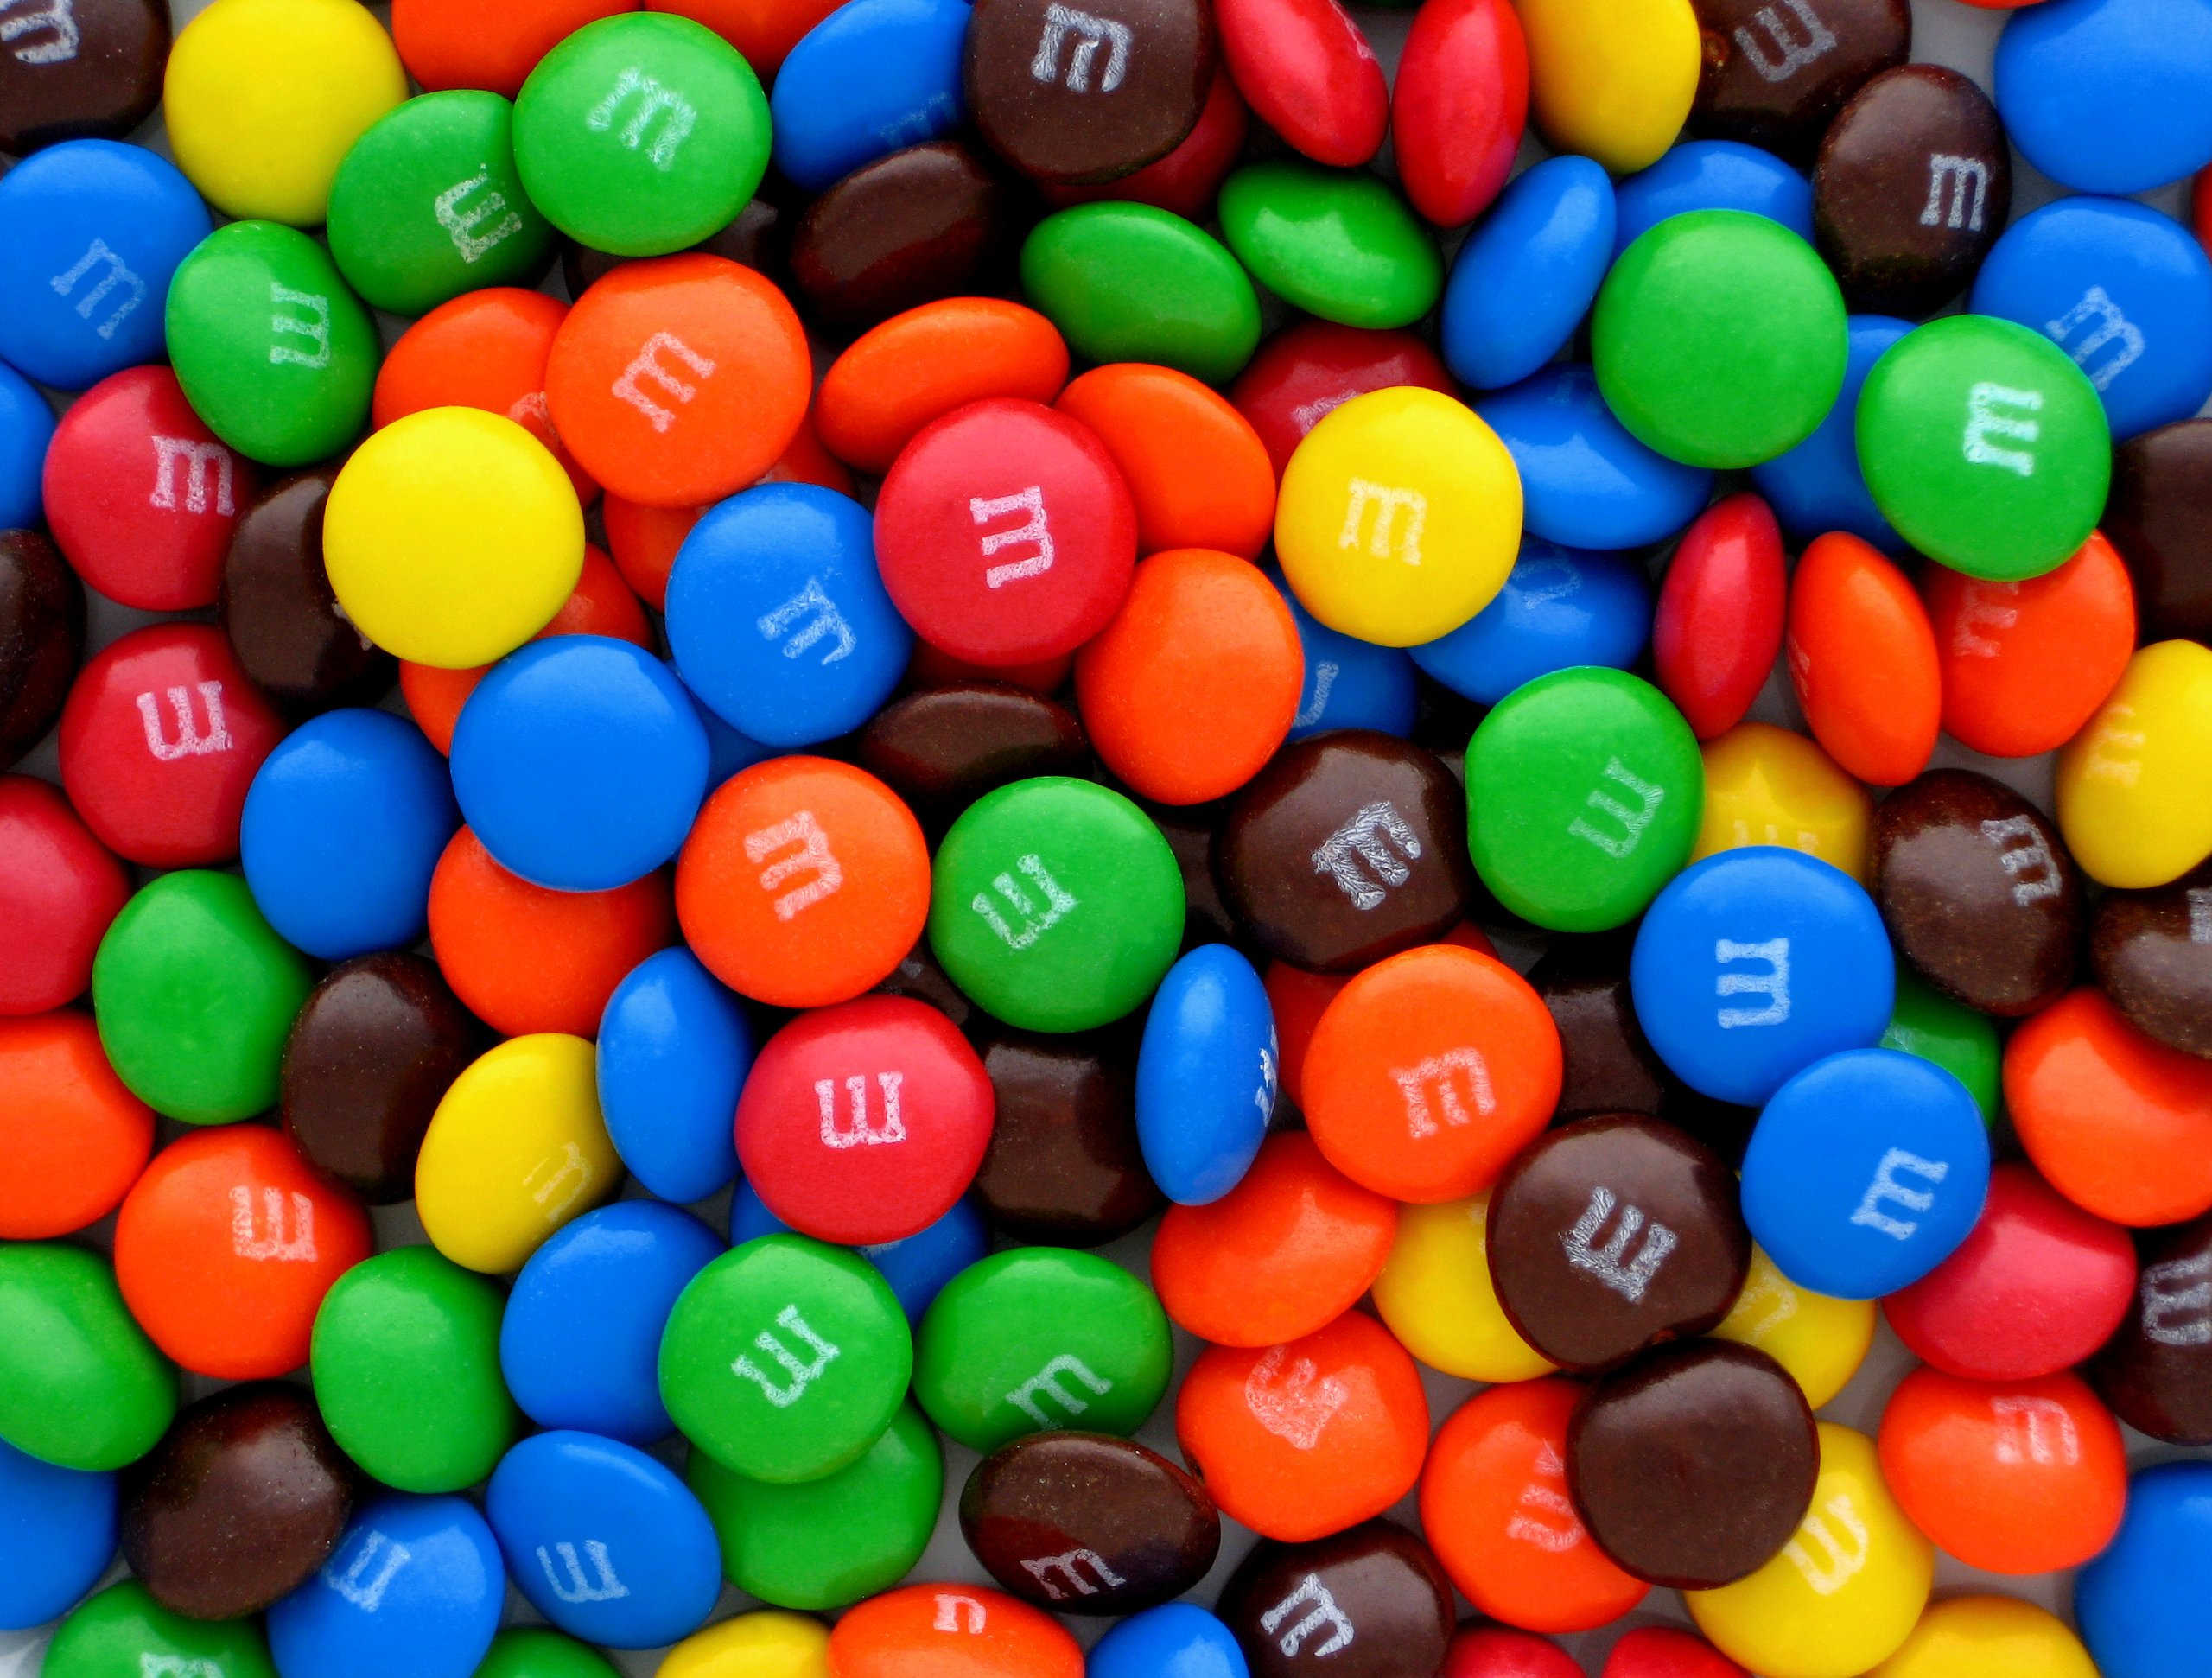 M&M's Plain Milk Chocolate - Bulk 10 Pounds - Buy Wholesale by M&M's (Image #1)